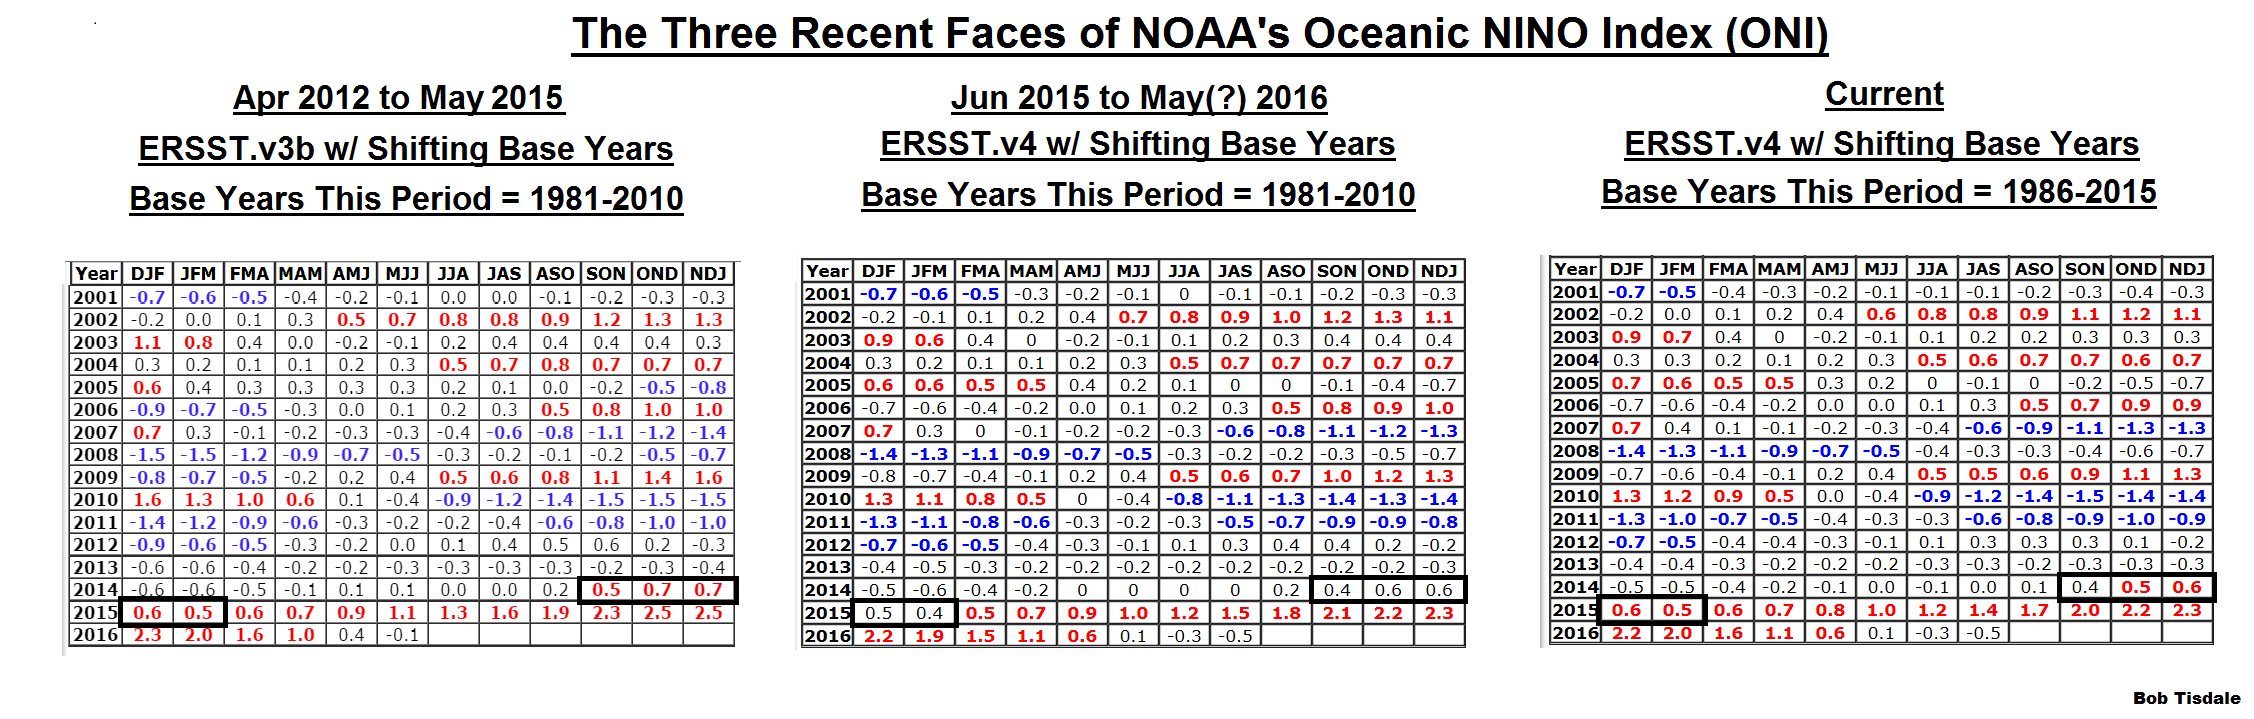 noaa has resurrected the 2014 15 el ni ntilde o its recent changes but the most noticeable change is the resurrection of the 2014 15 el nintildeo see table 1 where i ve highlighted the relative time period for the 3 most recent